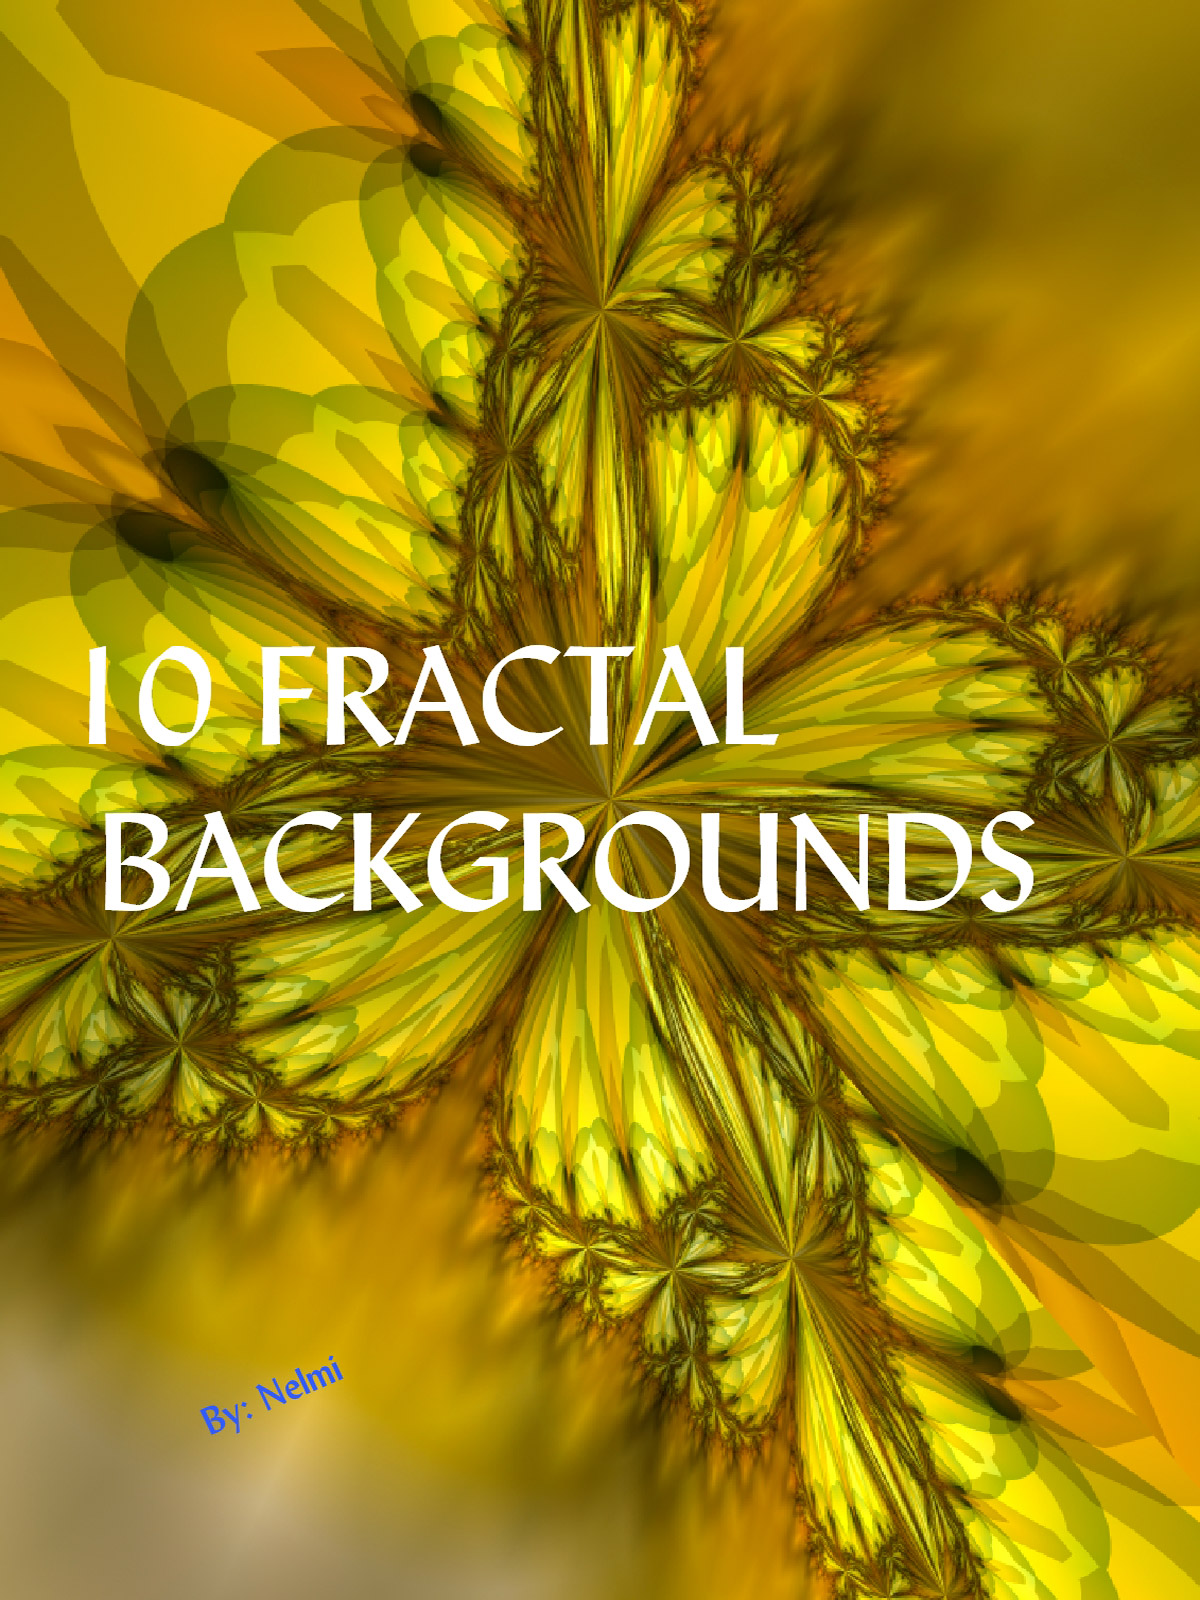 10 Fractal Backgrounds